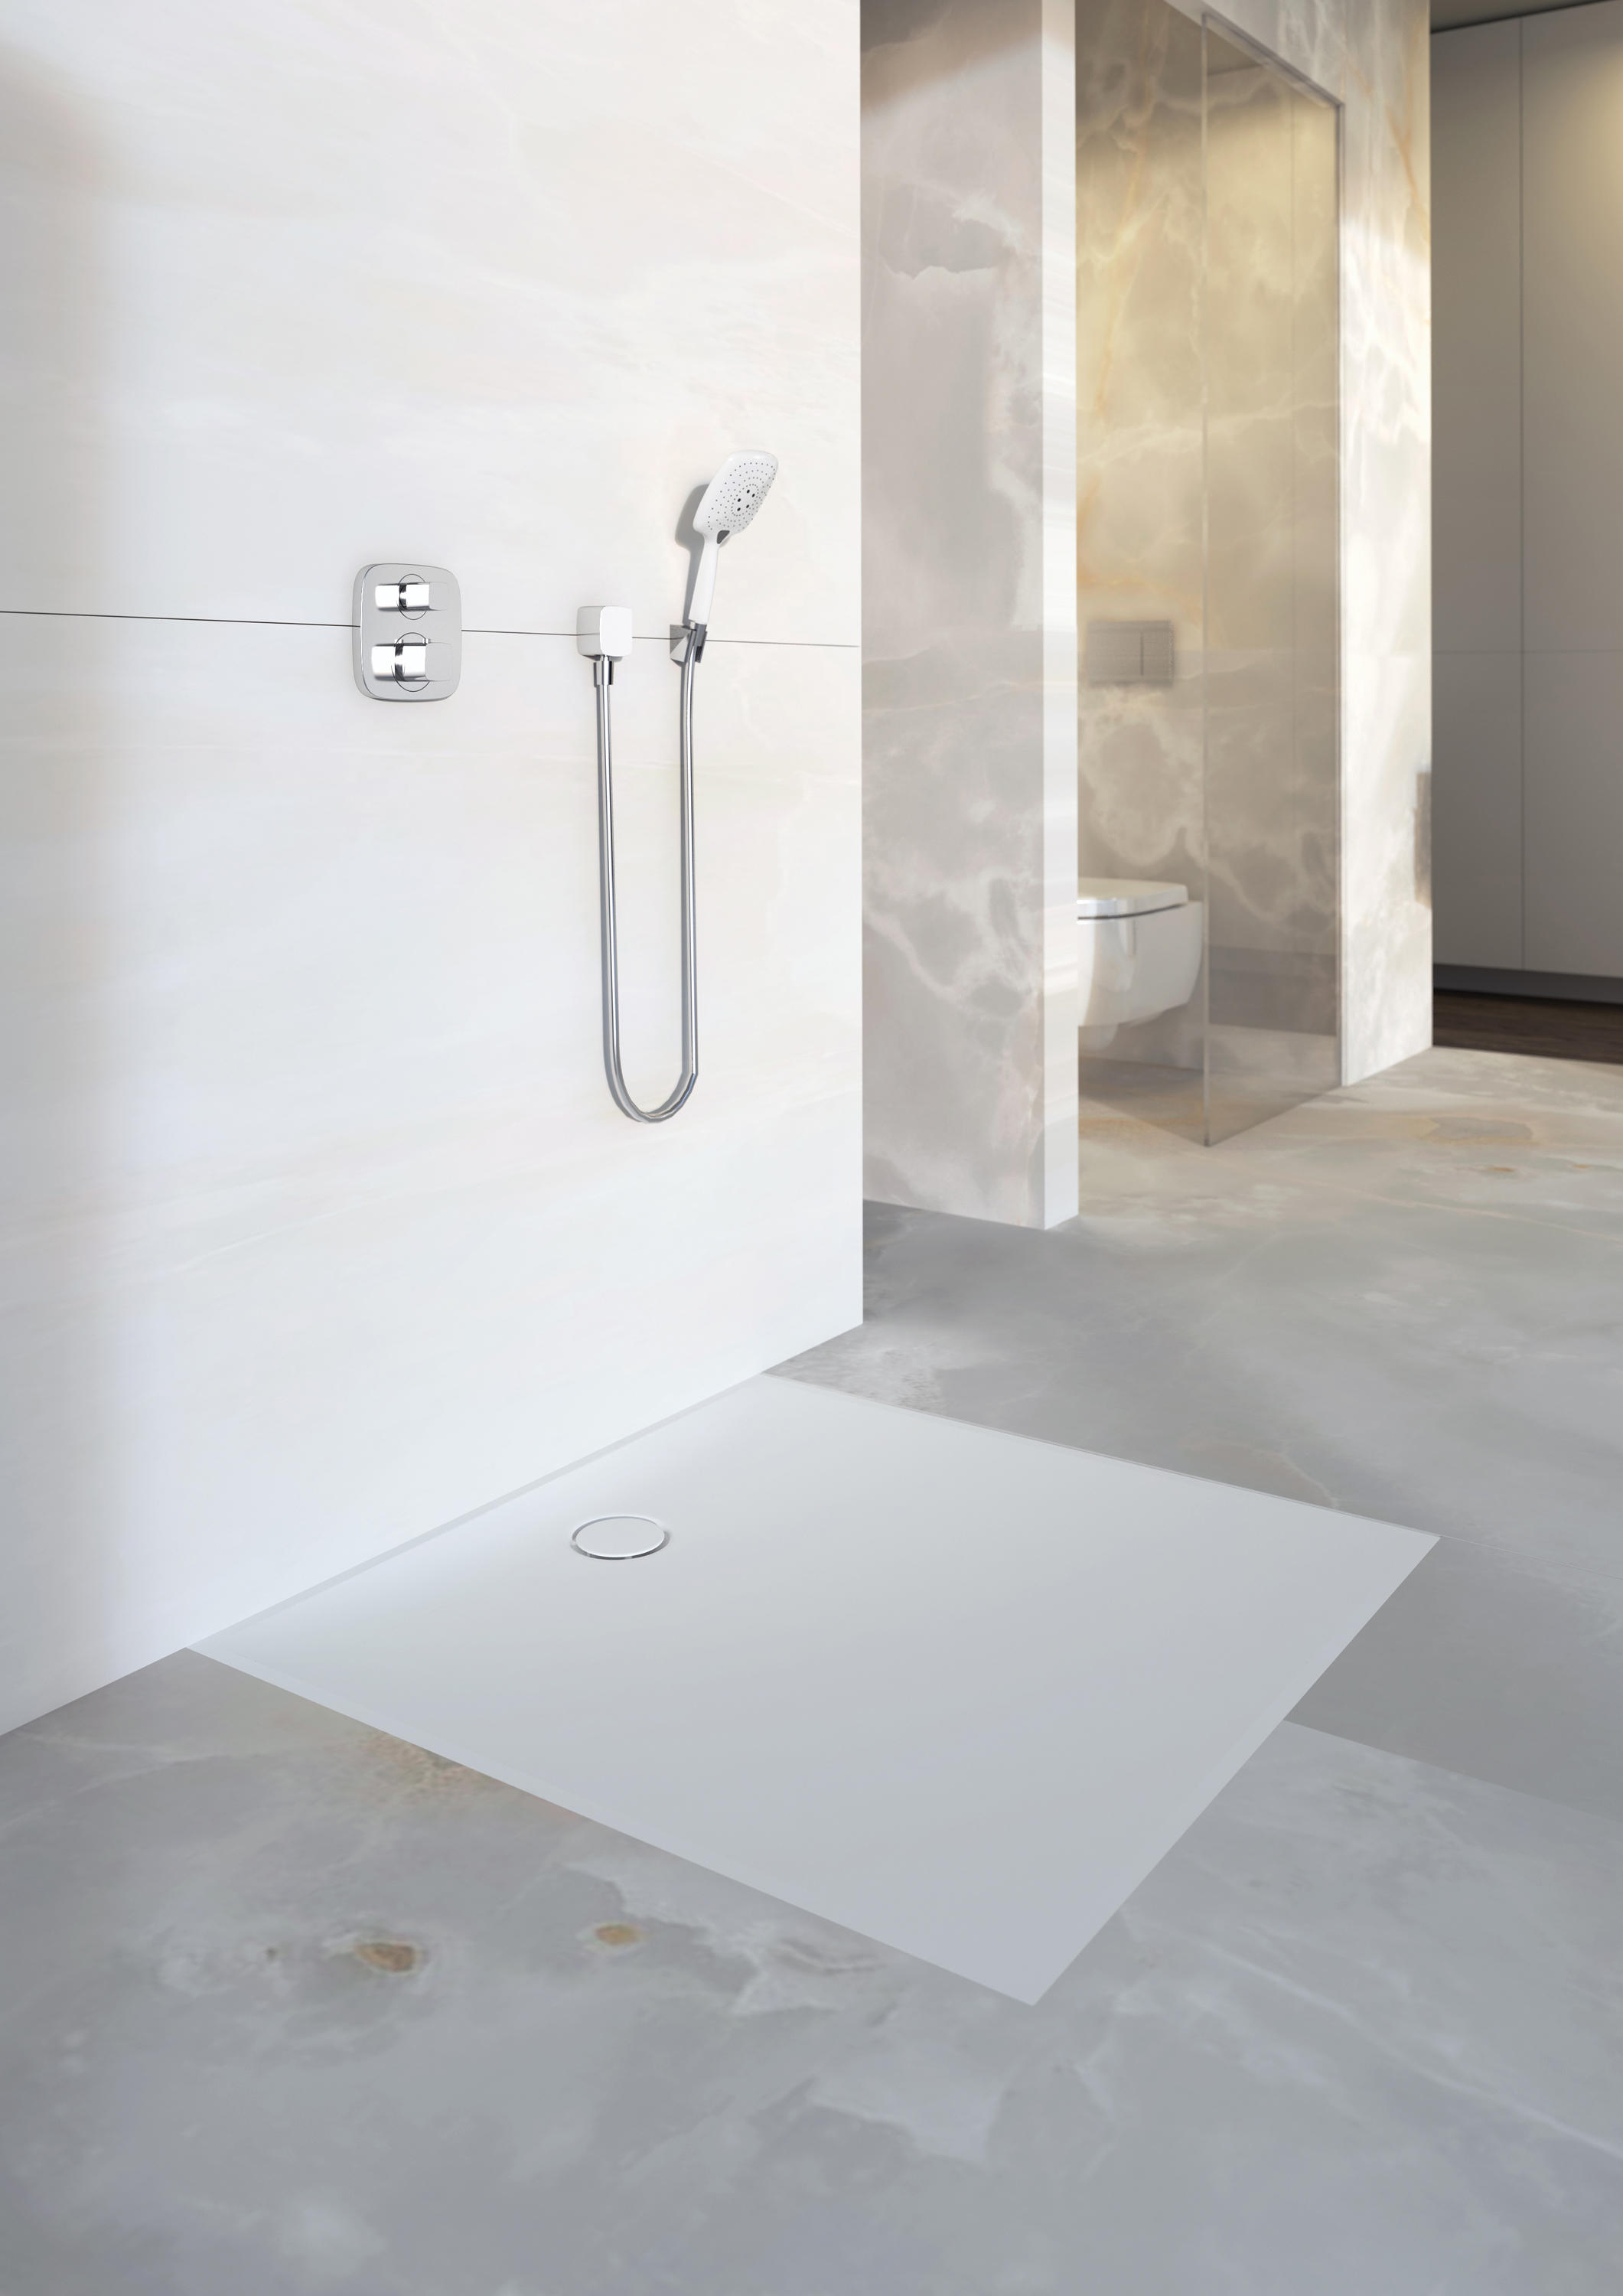 Floor Even Shower Solutions Design Grating Circle For Floor Drains Architonic